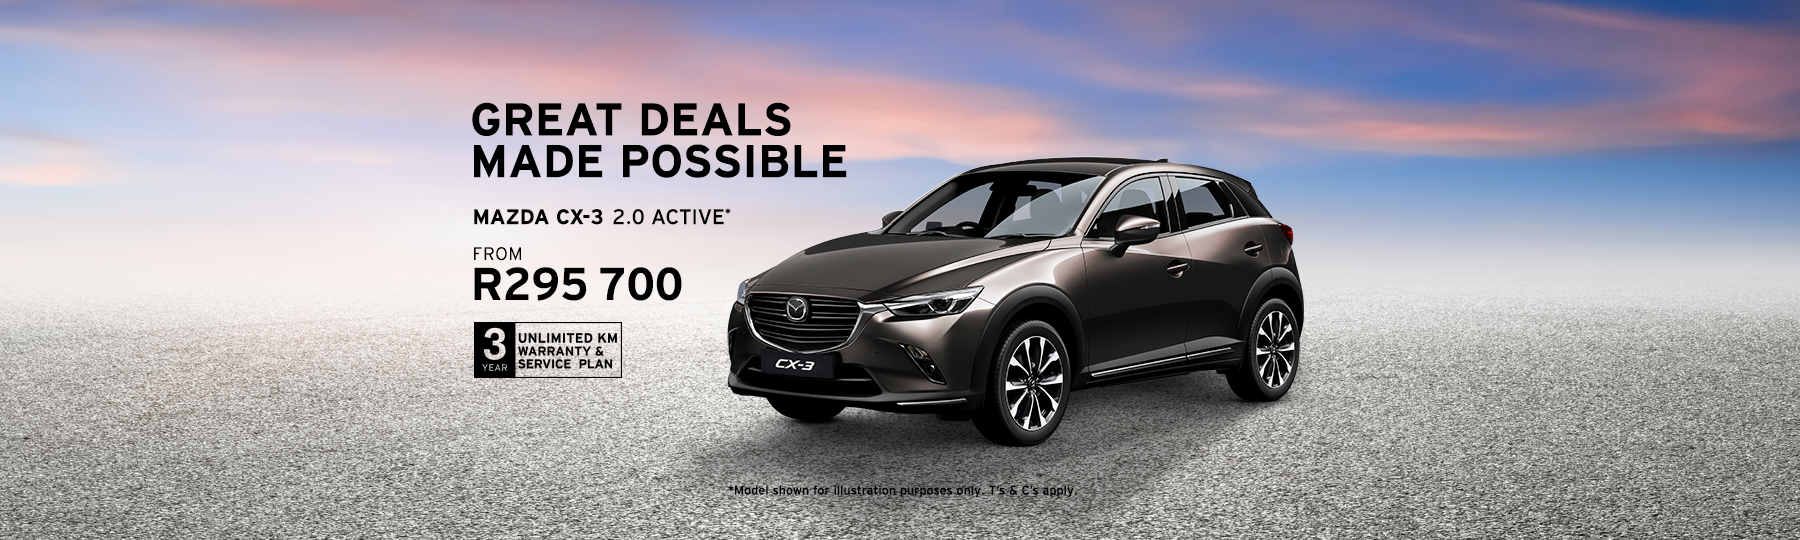 content/great-deals-made-possible-cx-3.html